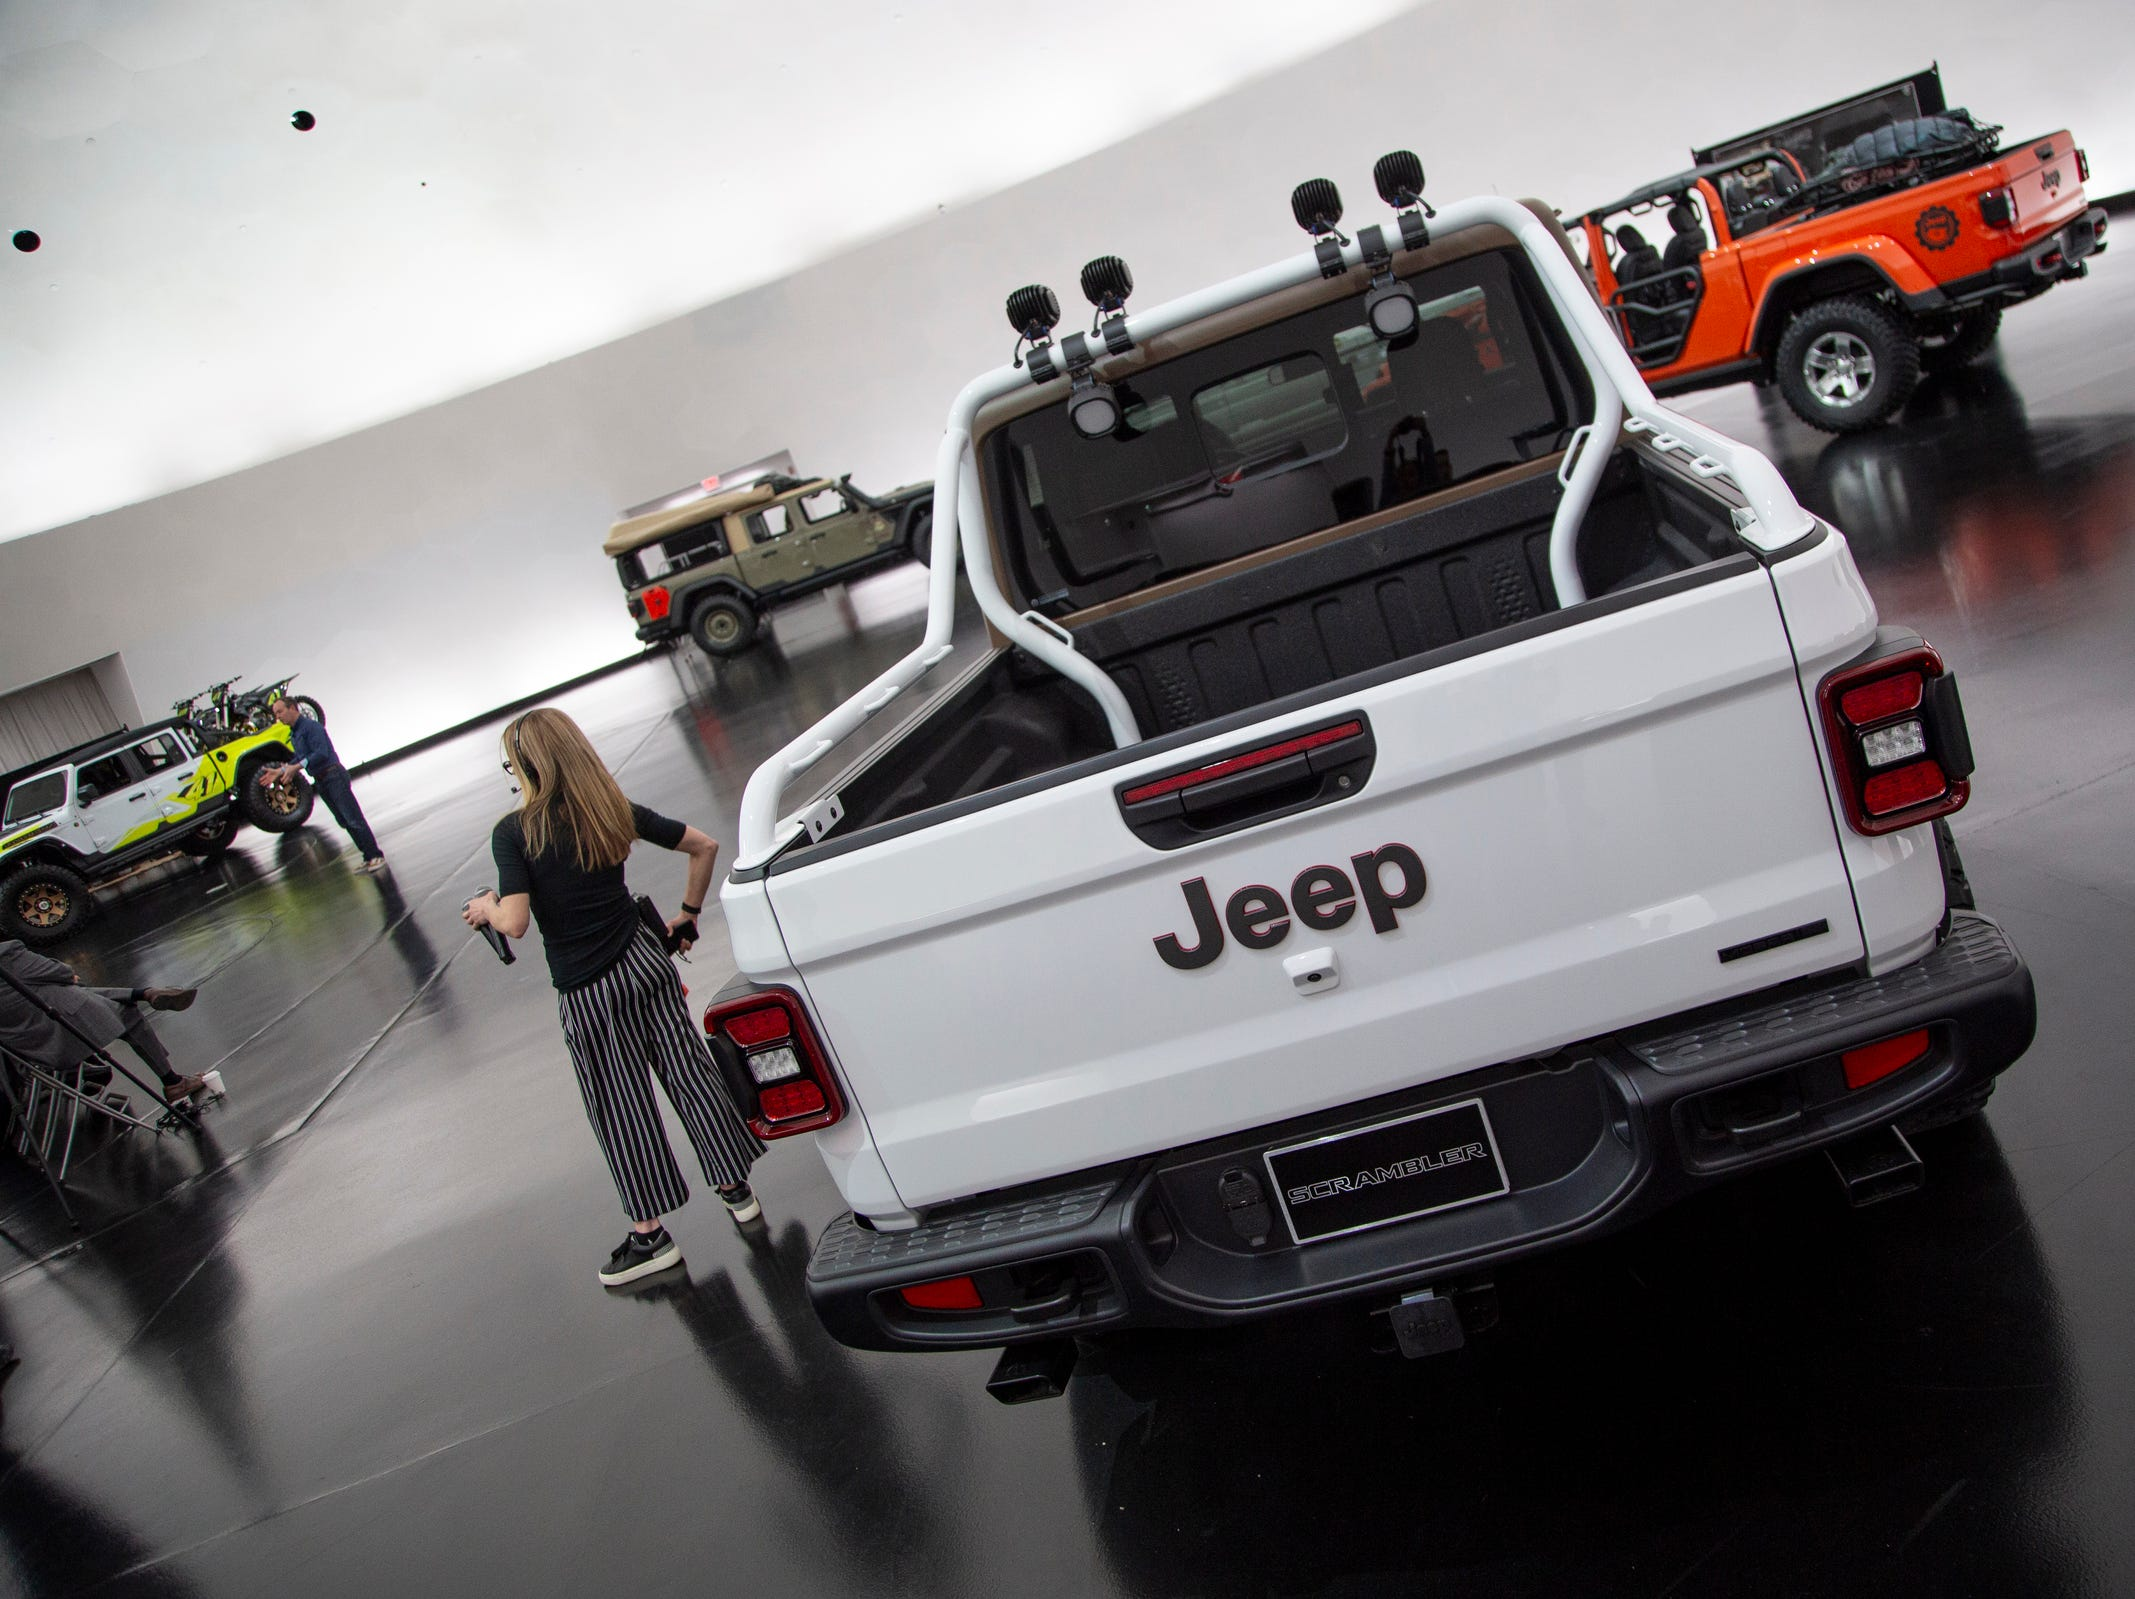 Jeep and Mopar brands debut six concept vehicles including the Jeep JT Scrambler Friday, April 5, 2019 at the Fiat Chrysler Tech Center and headquarters for the 53rd annual Moab Easter Jeep Safari. The Jeep Scrambler bed area is customized with spray-in bed liner.